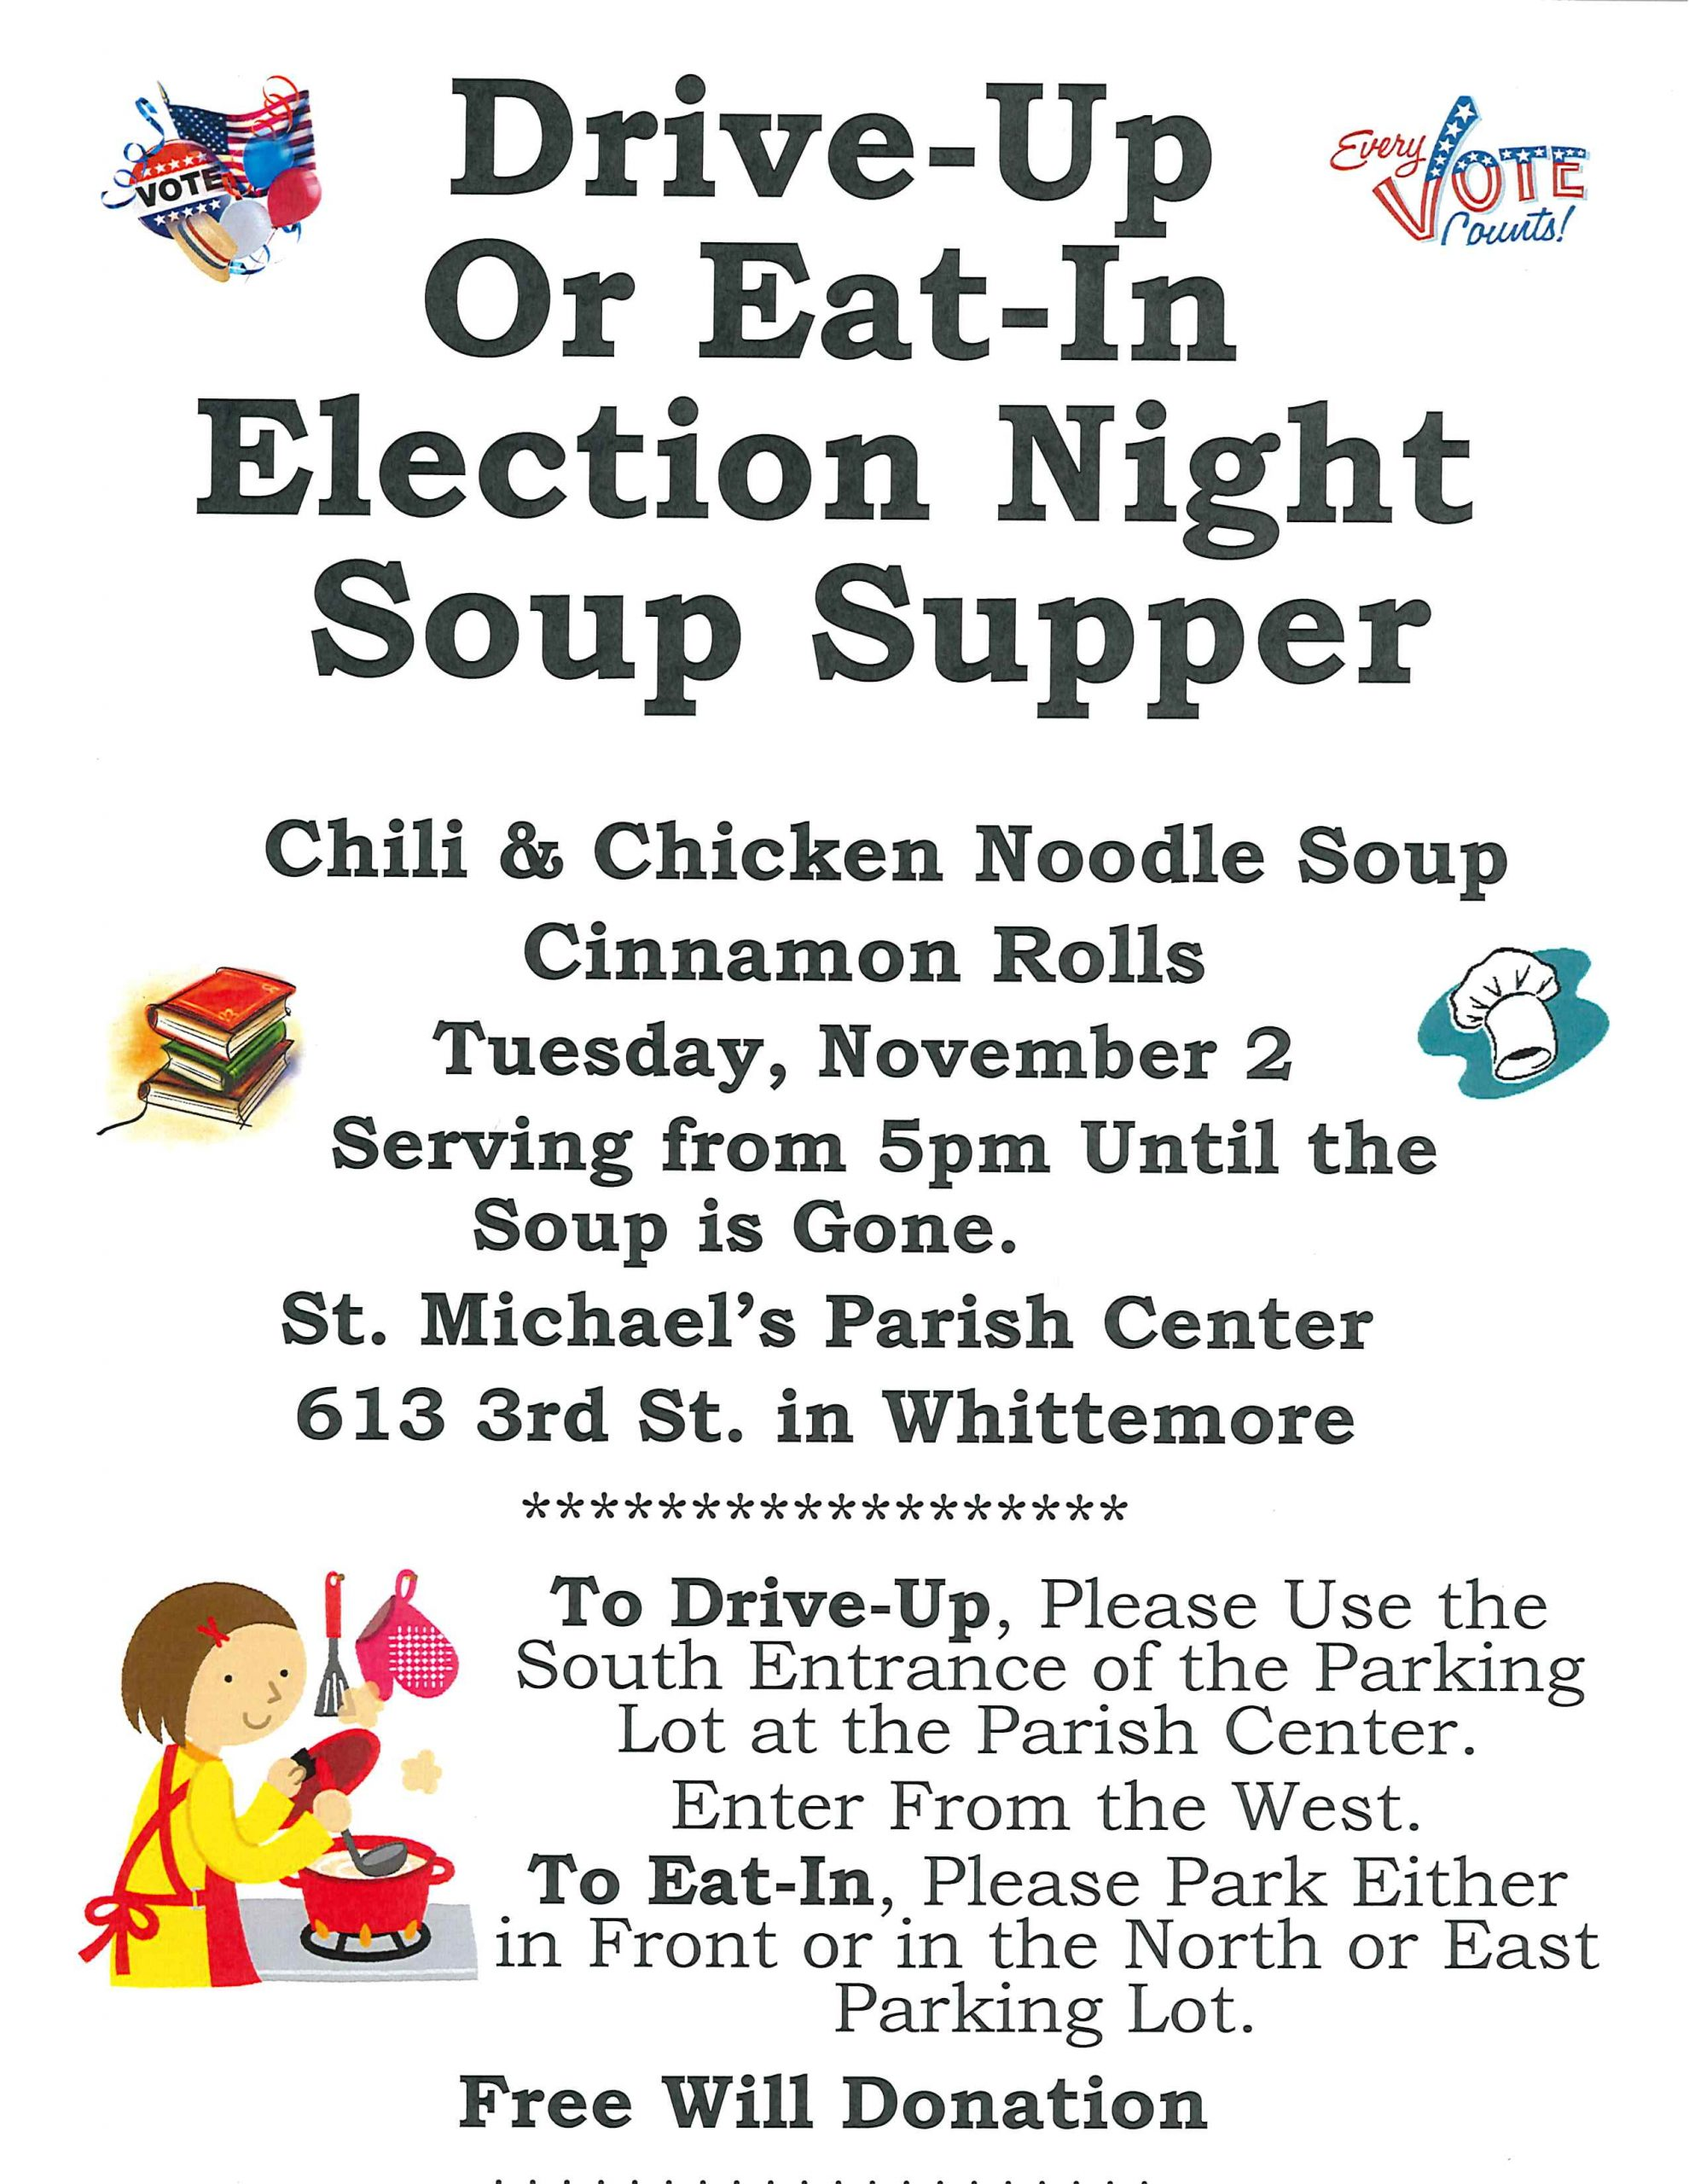 Whittemore Public Library Election Night Soup Supper